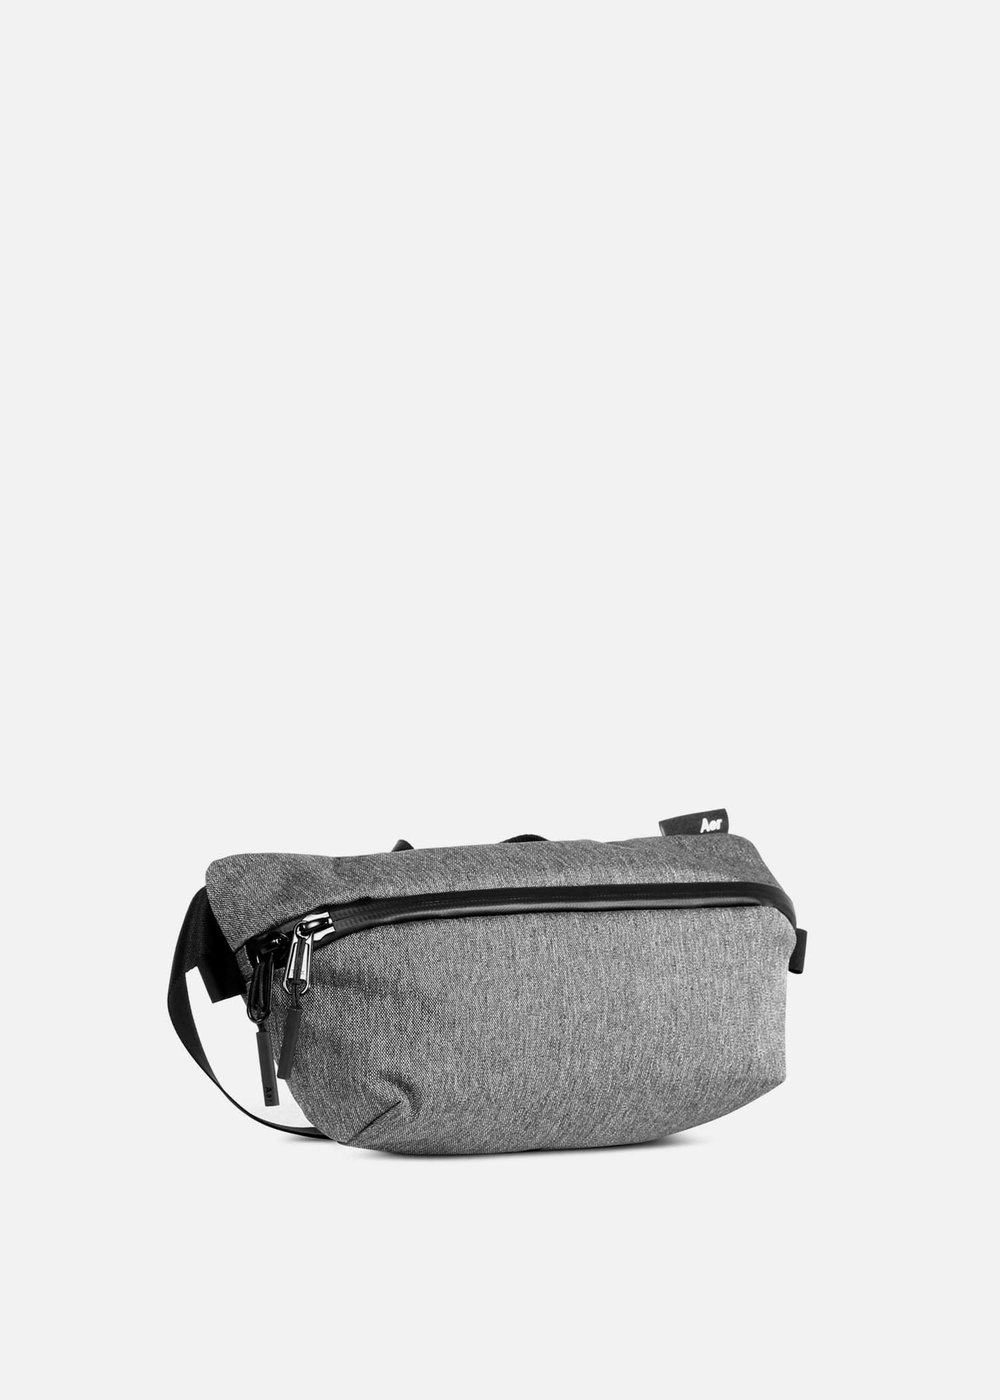 Aer Sling Bag Best Gym Bag